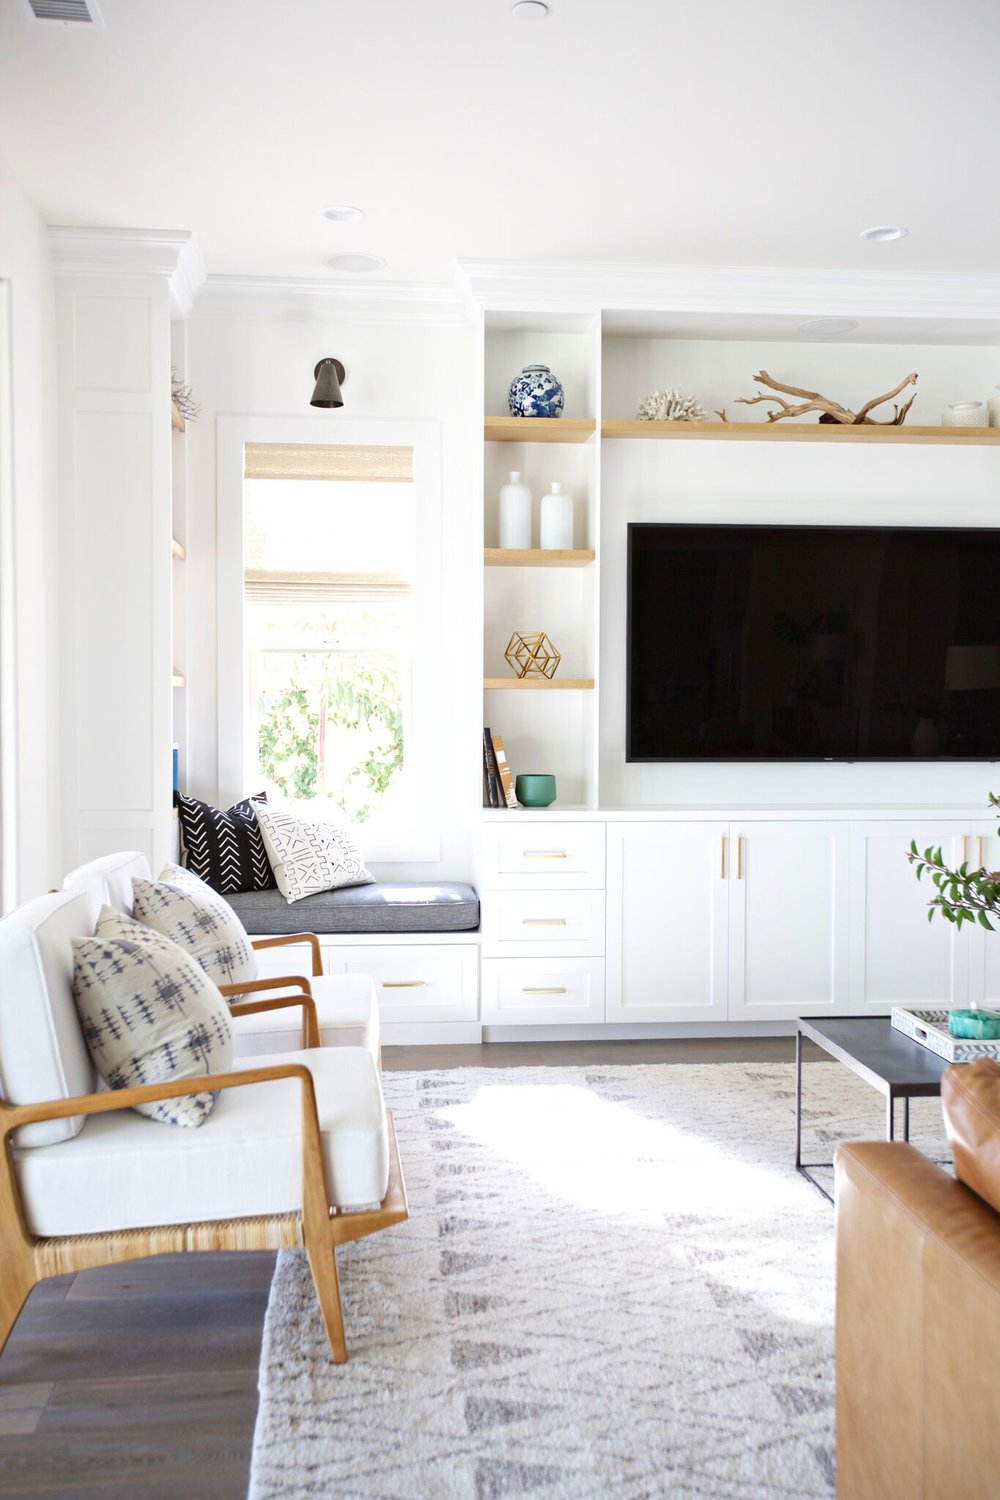 Bamboo white chairs with large flat screen TV